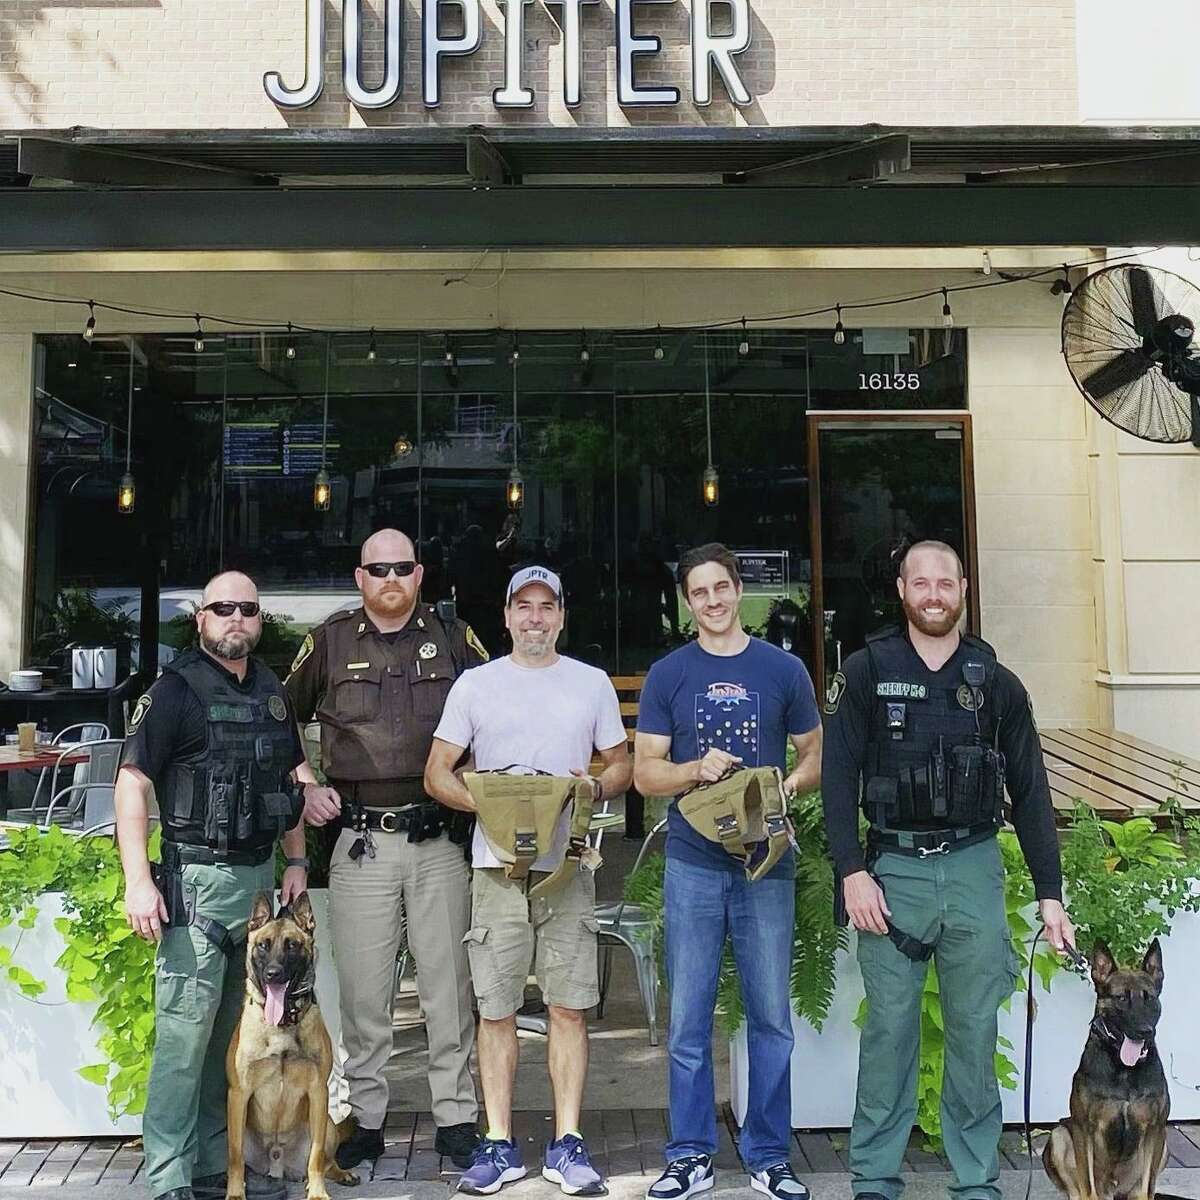 Pictured from left are Fort Bend County Sheriff's Office Deputy Mangum; K9 Durko; Sgt. Hricko; Jupiter Pizza owners Robert White and Victor Litwenko; Deputy Cloud; and K9 Urko.